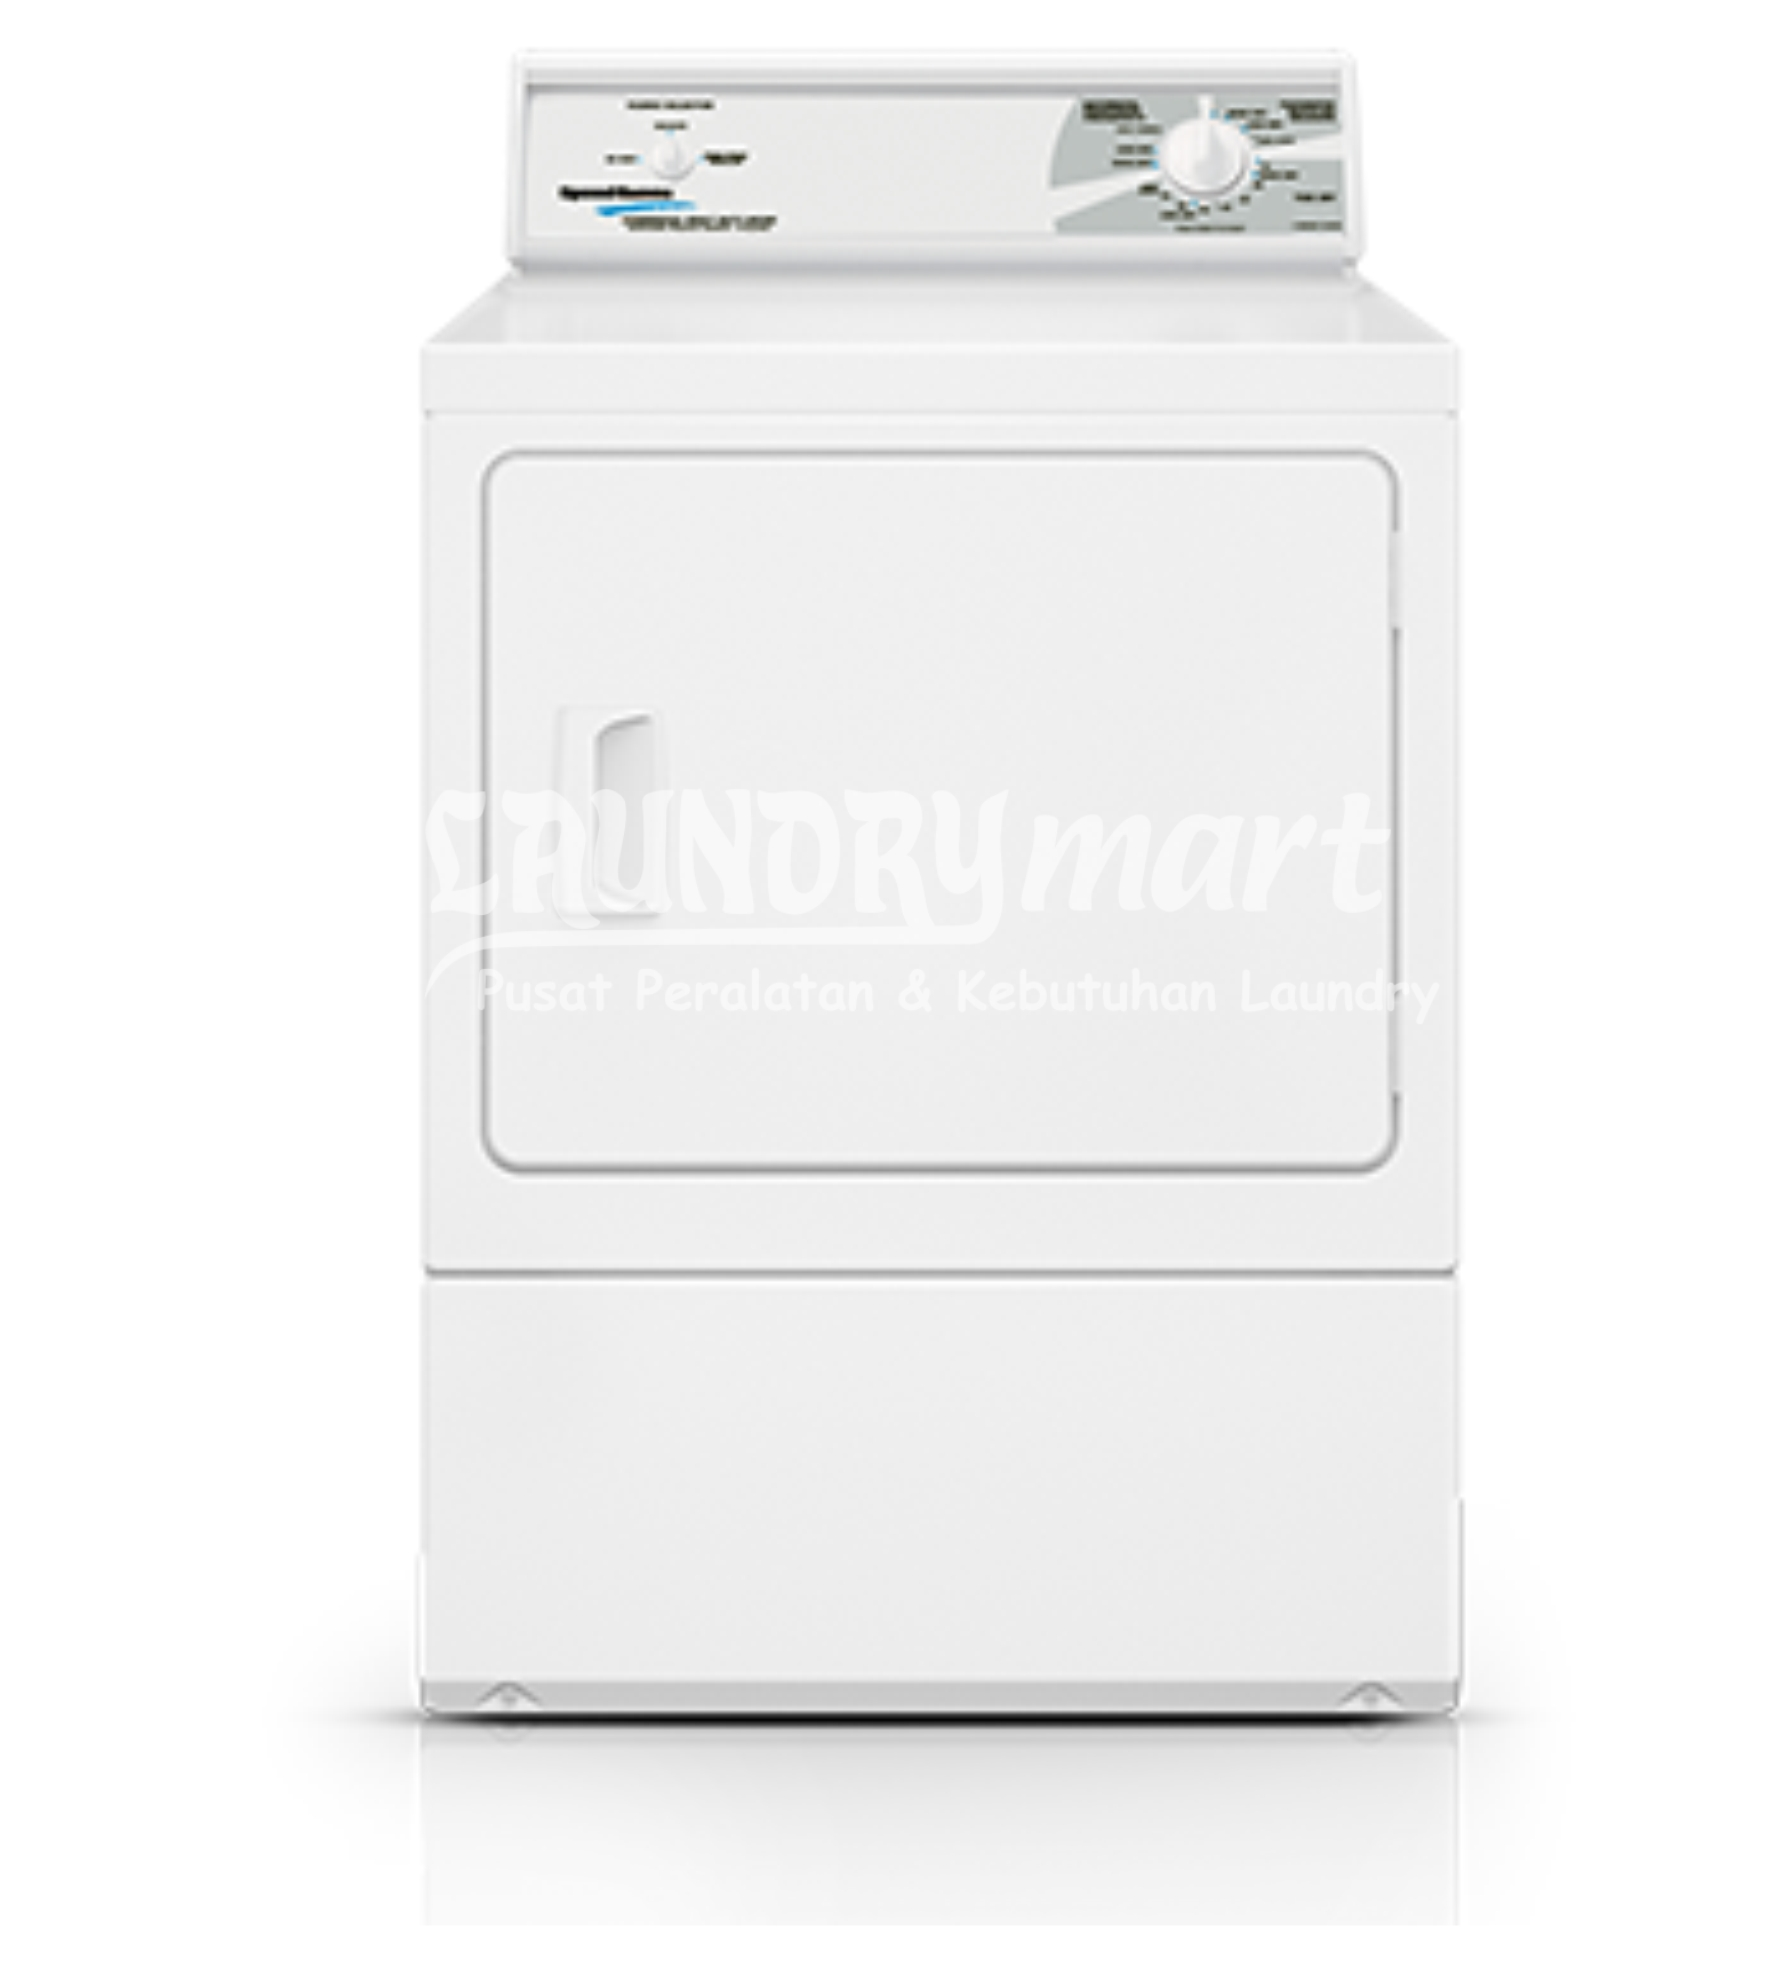 mesin dryer - mesin pengering - mesin laundry - gas - speed queen - LGS 37